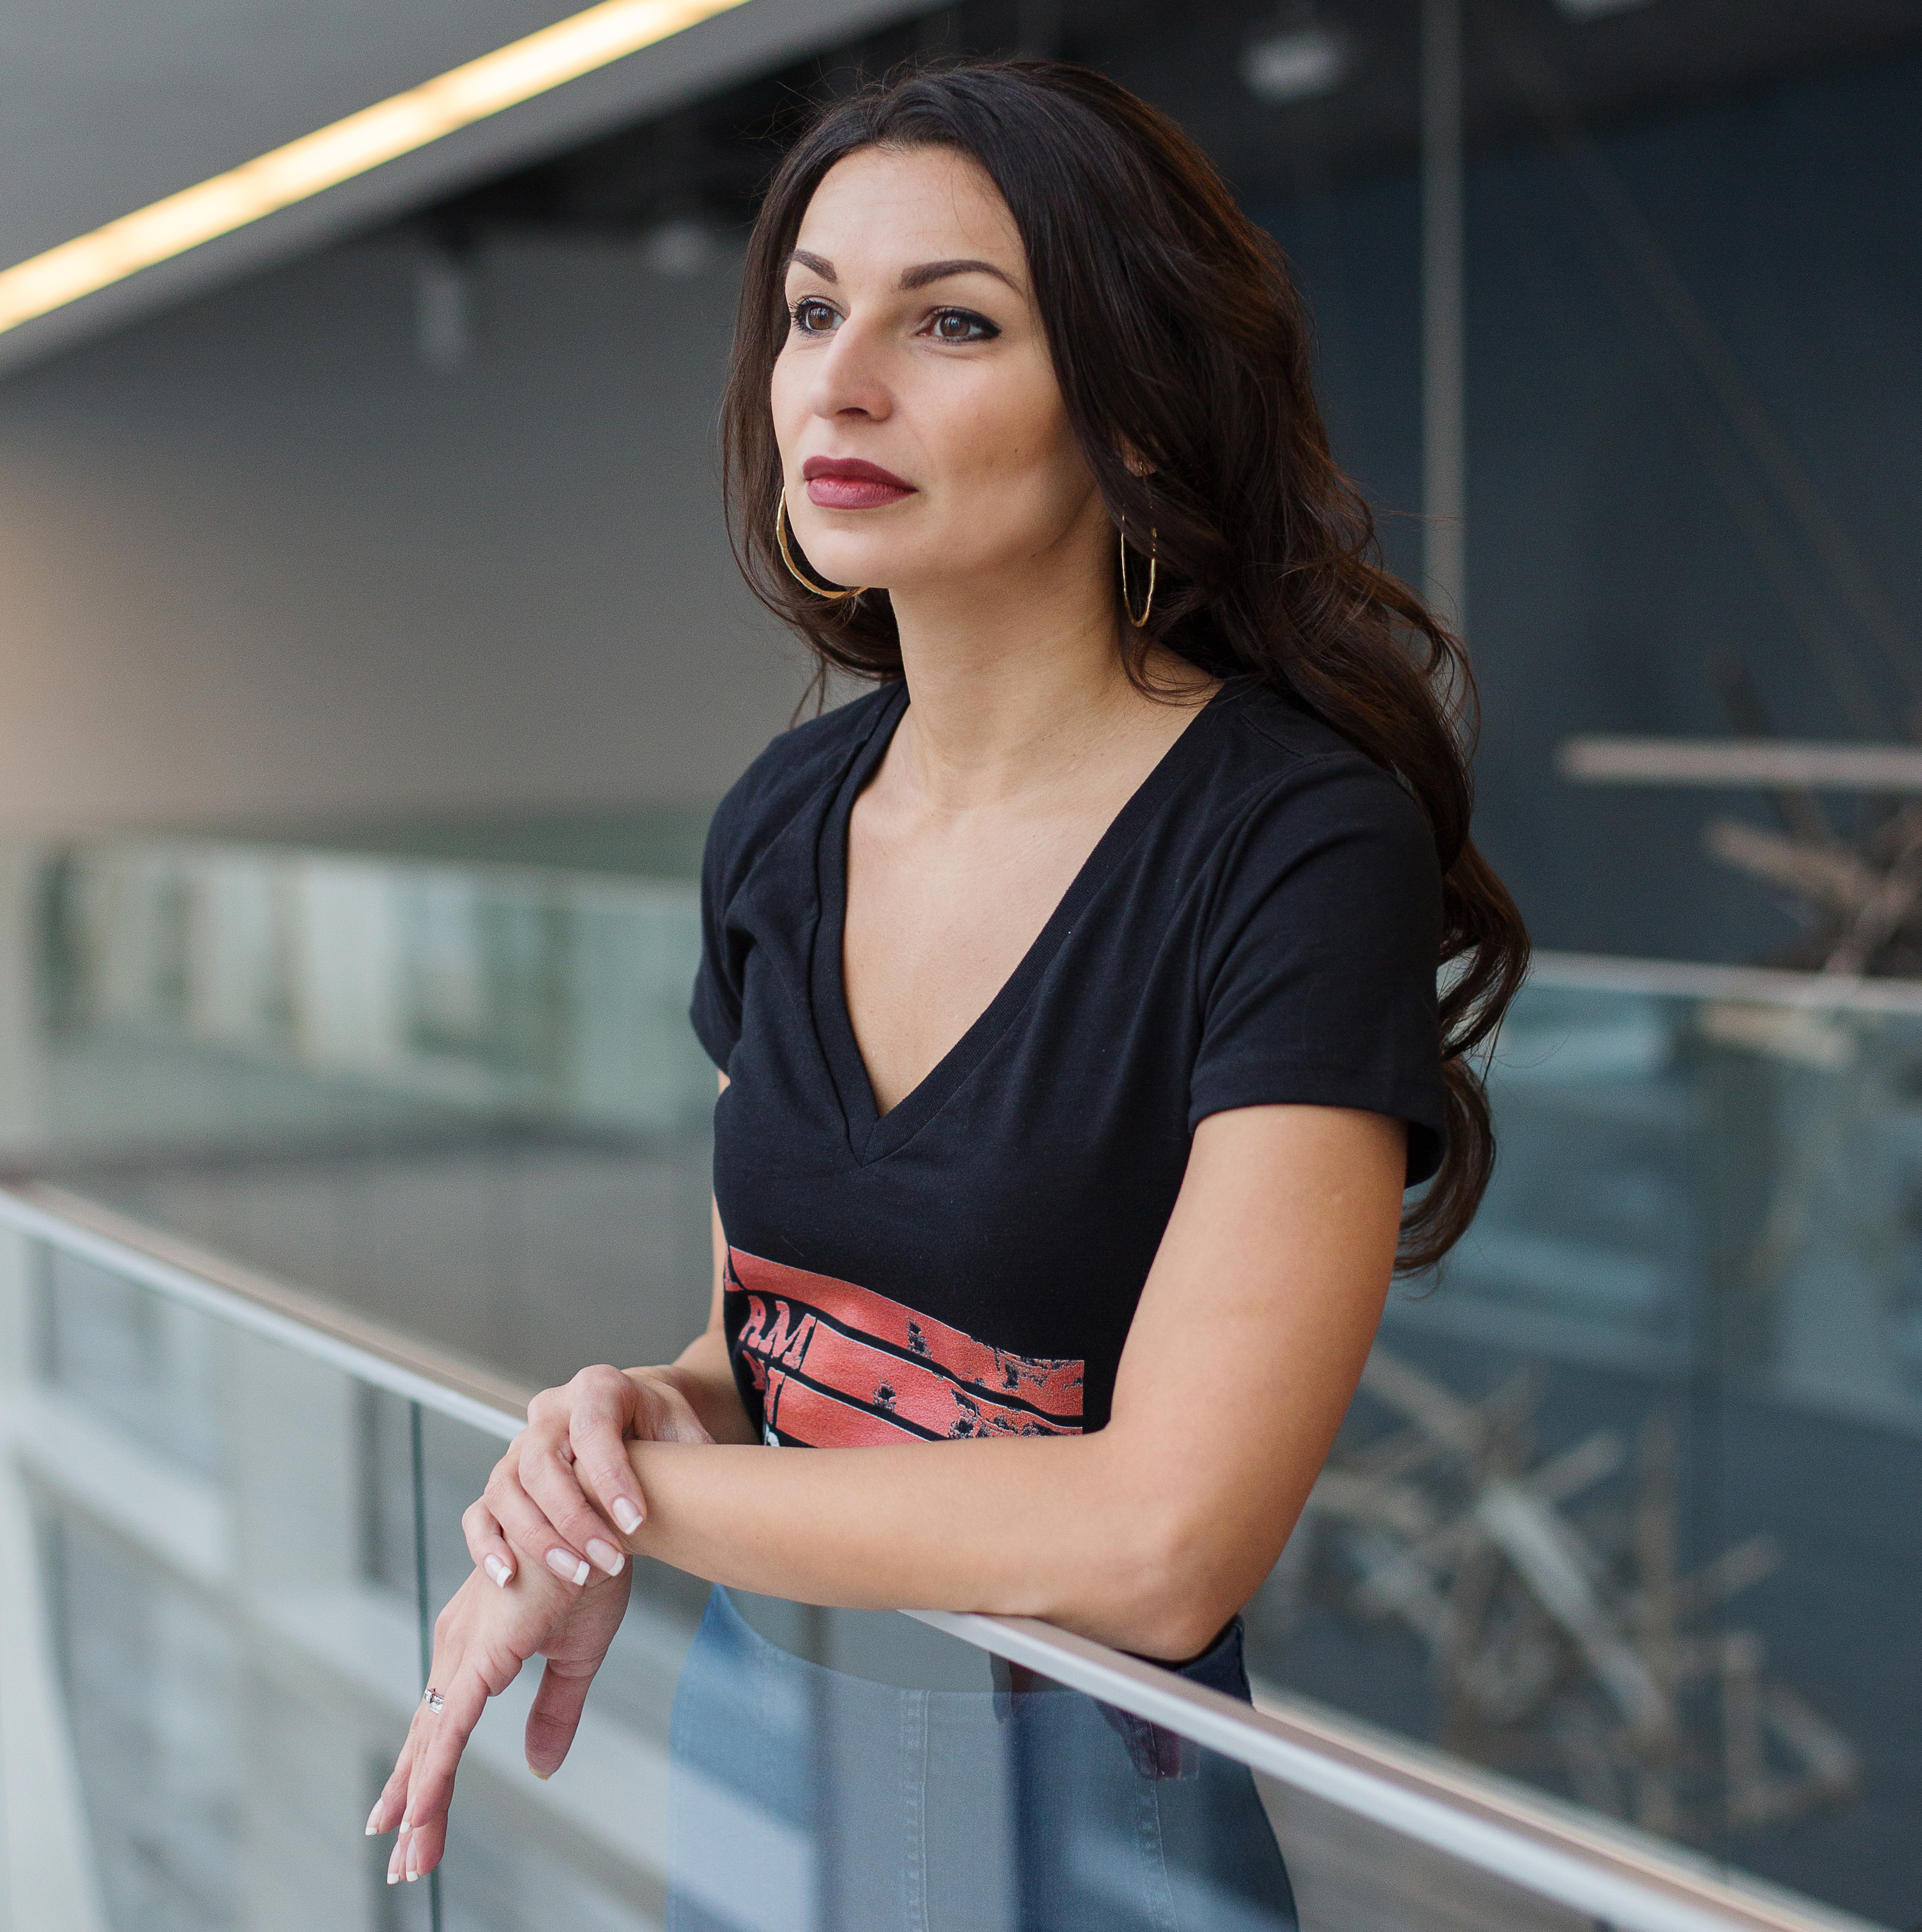 Headshot of Polish-born playwright Martyna Majok, winner of the 2018 Pulitzer Prize.